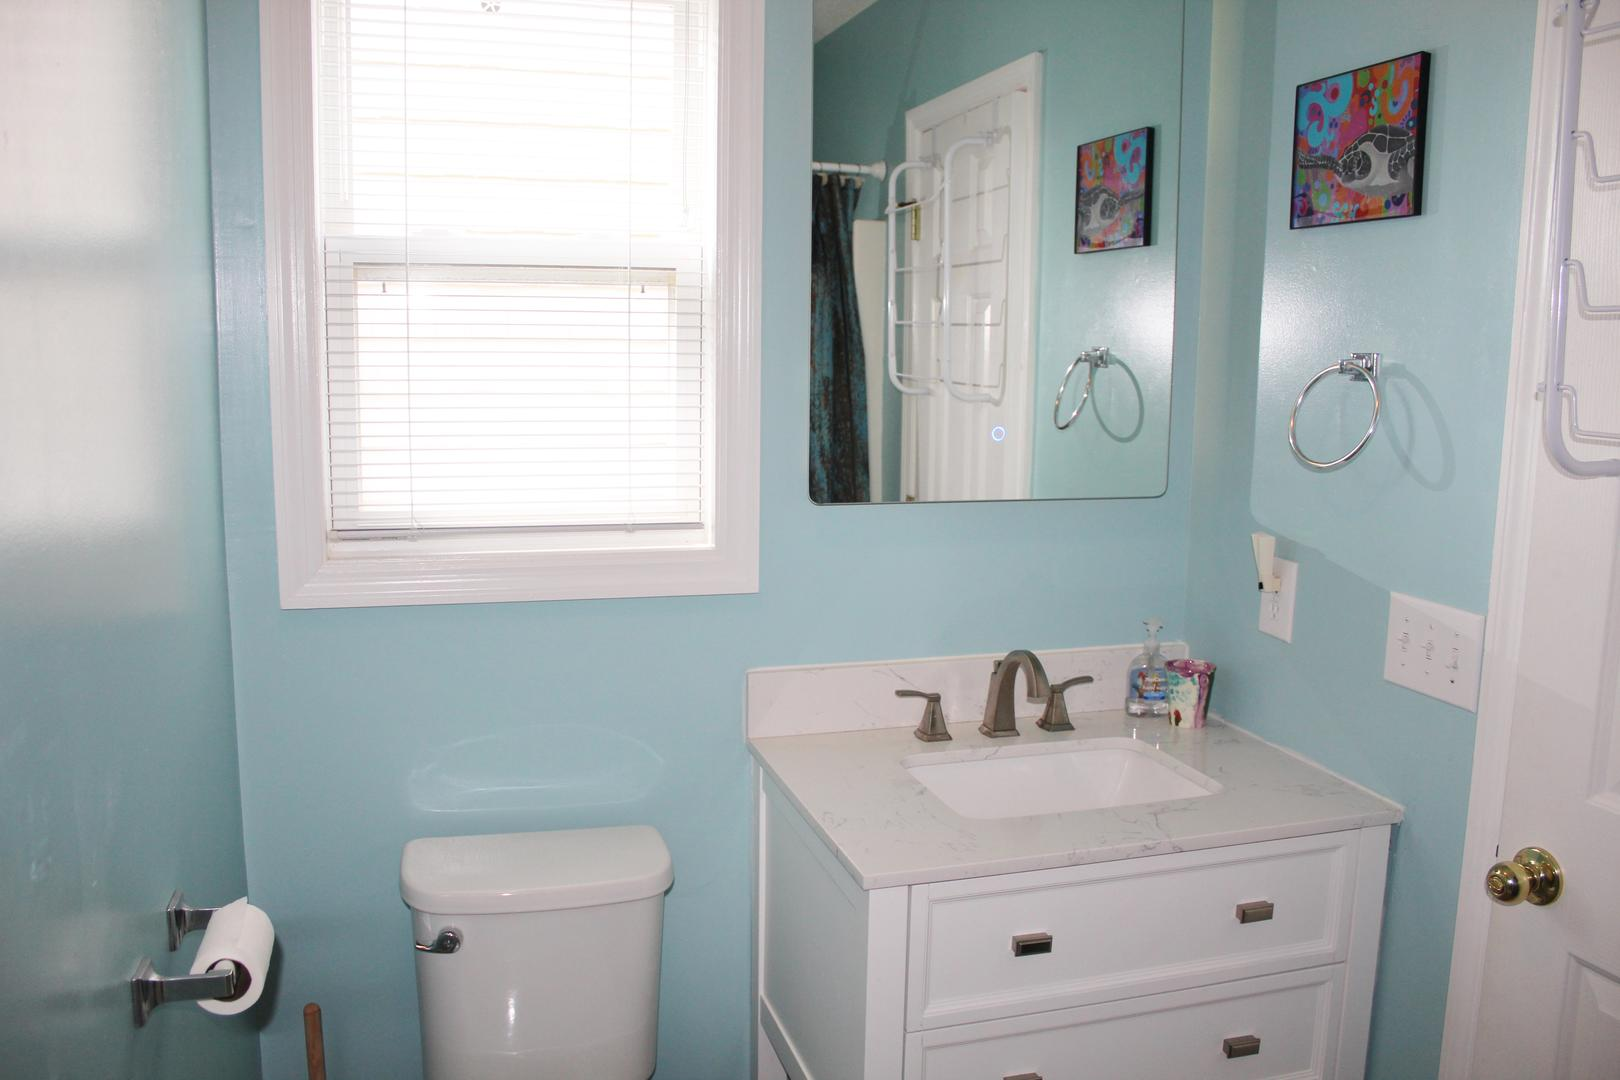 Bathroom in bedroom